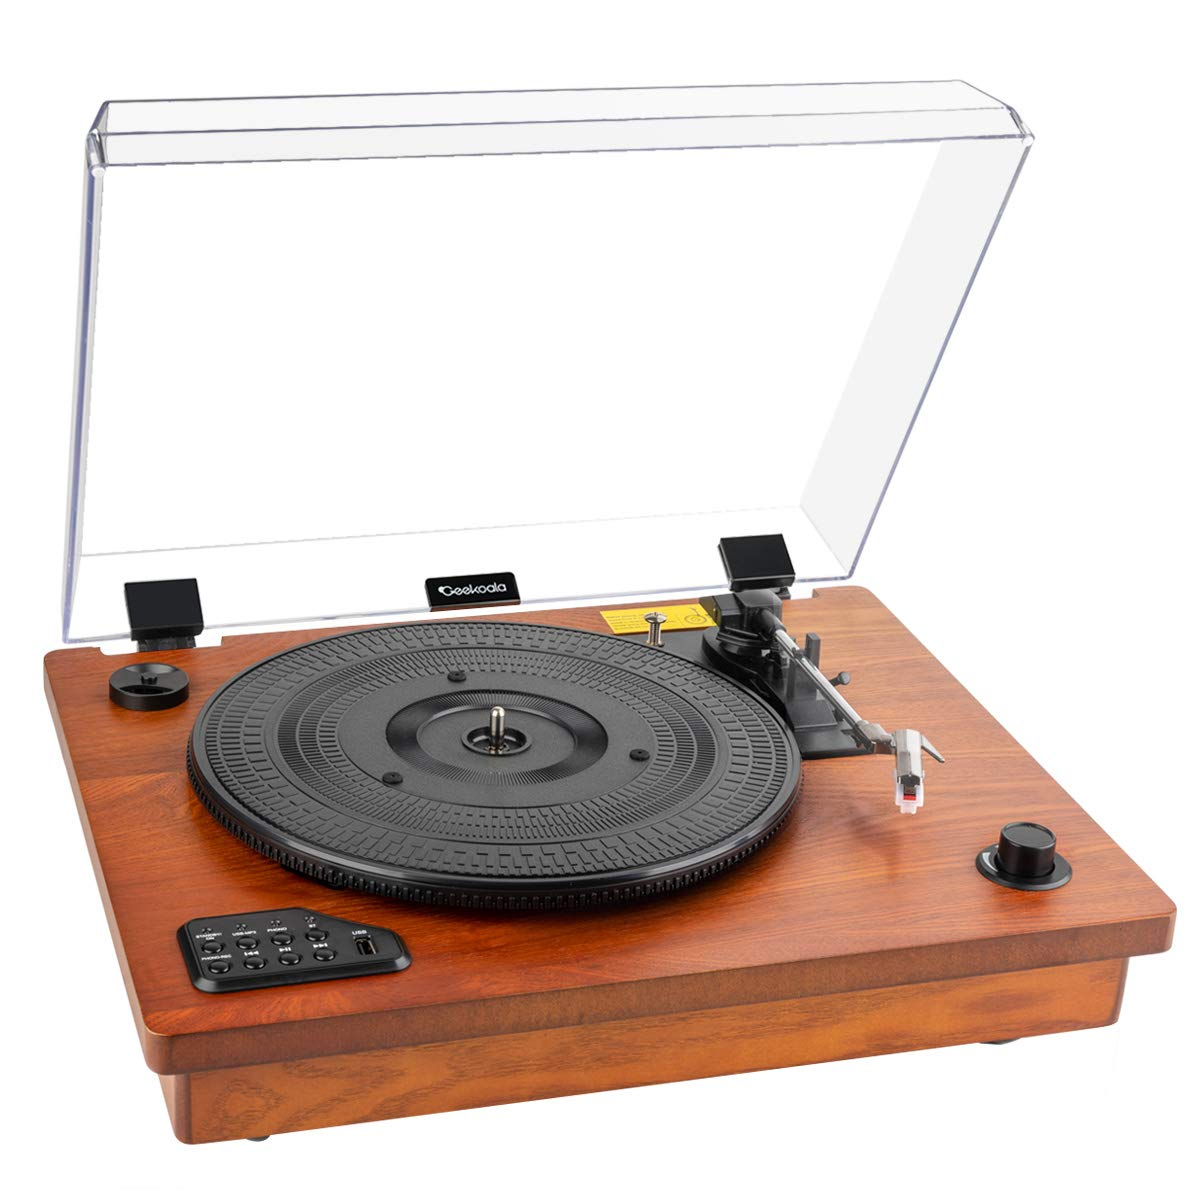 Record Player- Geekoala Turntable, Vinyl Player Bluetooth, Vinyl Turntable 3 Speed, Vinyl Record Player with Built-in Stereo Speaker, Vinyl-to-MP3 Recording, Classic Wooden